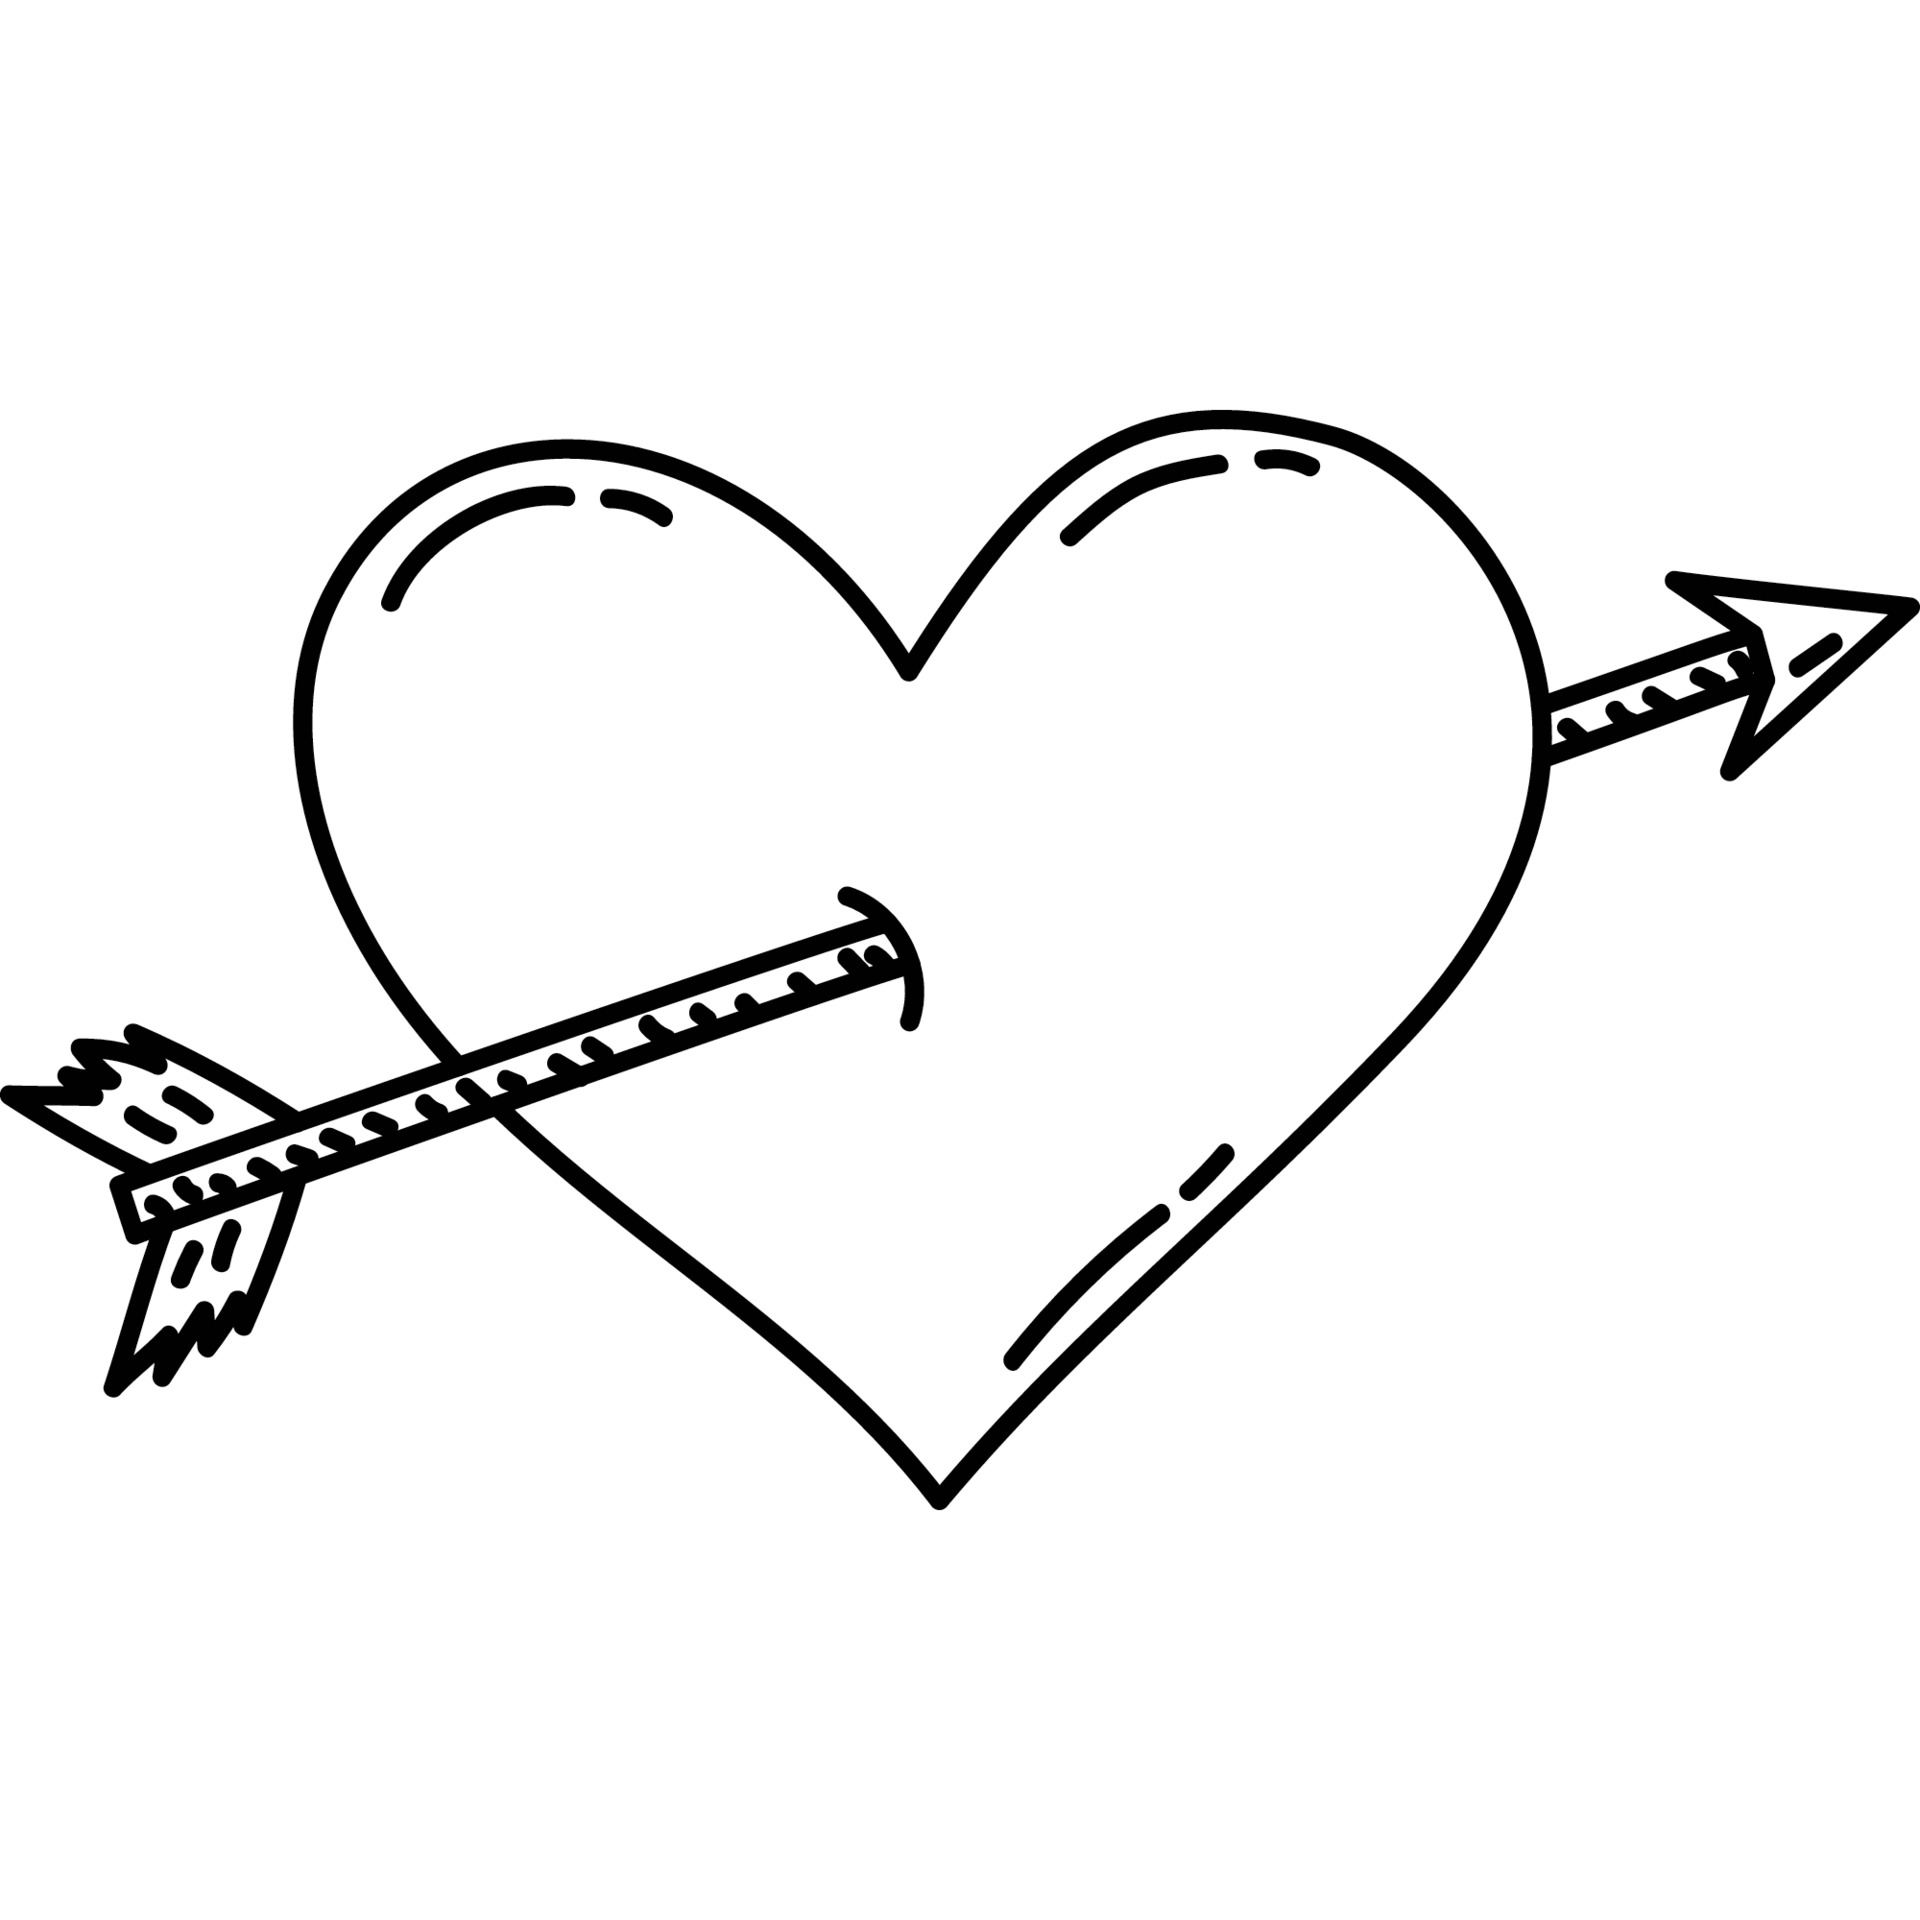 Heart Arrow Icon. Doddle Hand Drawn or Black Outline icon Style. Vector  Icon 1976511 Vector Art at Vecteezy